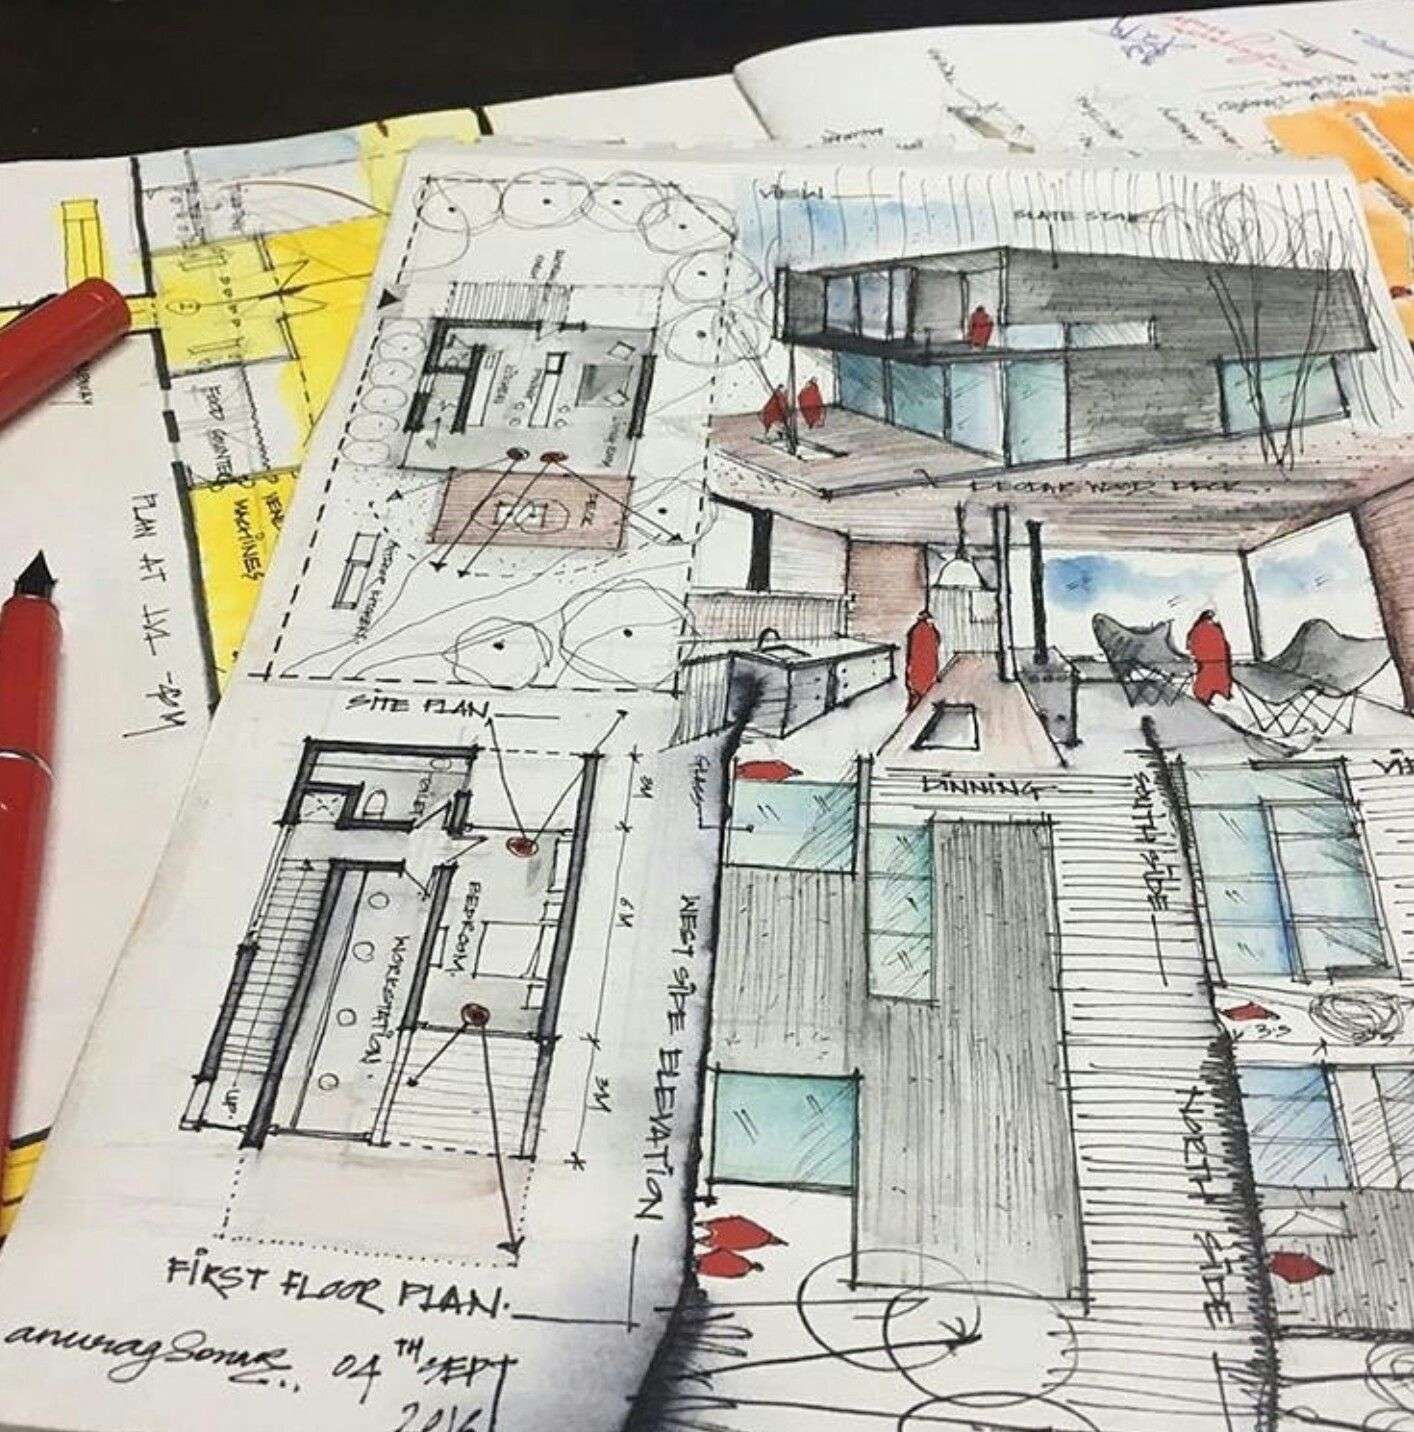 Pin By Jury Bladimir On Sketch Skiss Creative Process Design Architecture Concept Drawings Architecture Sketch